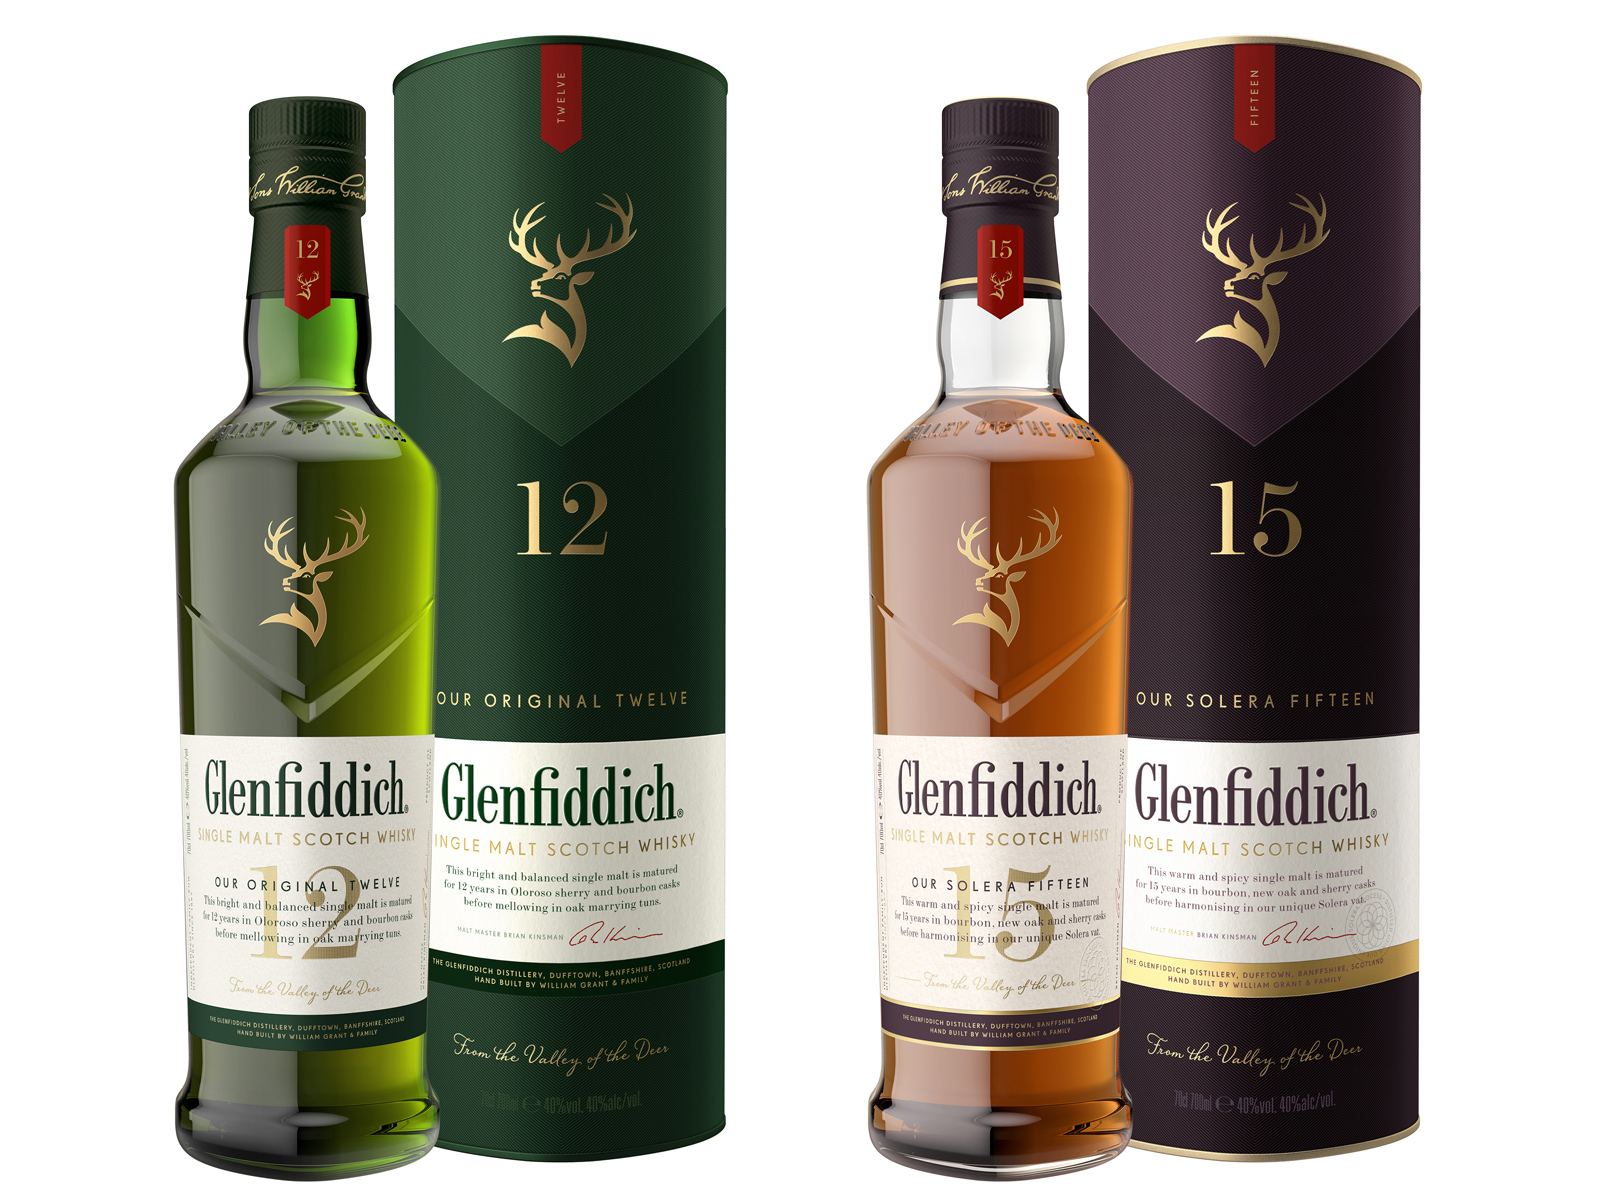 The World's Two Best-Selling Scotch Brands Look a Little Different